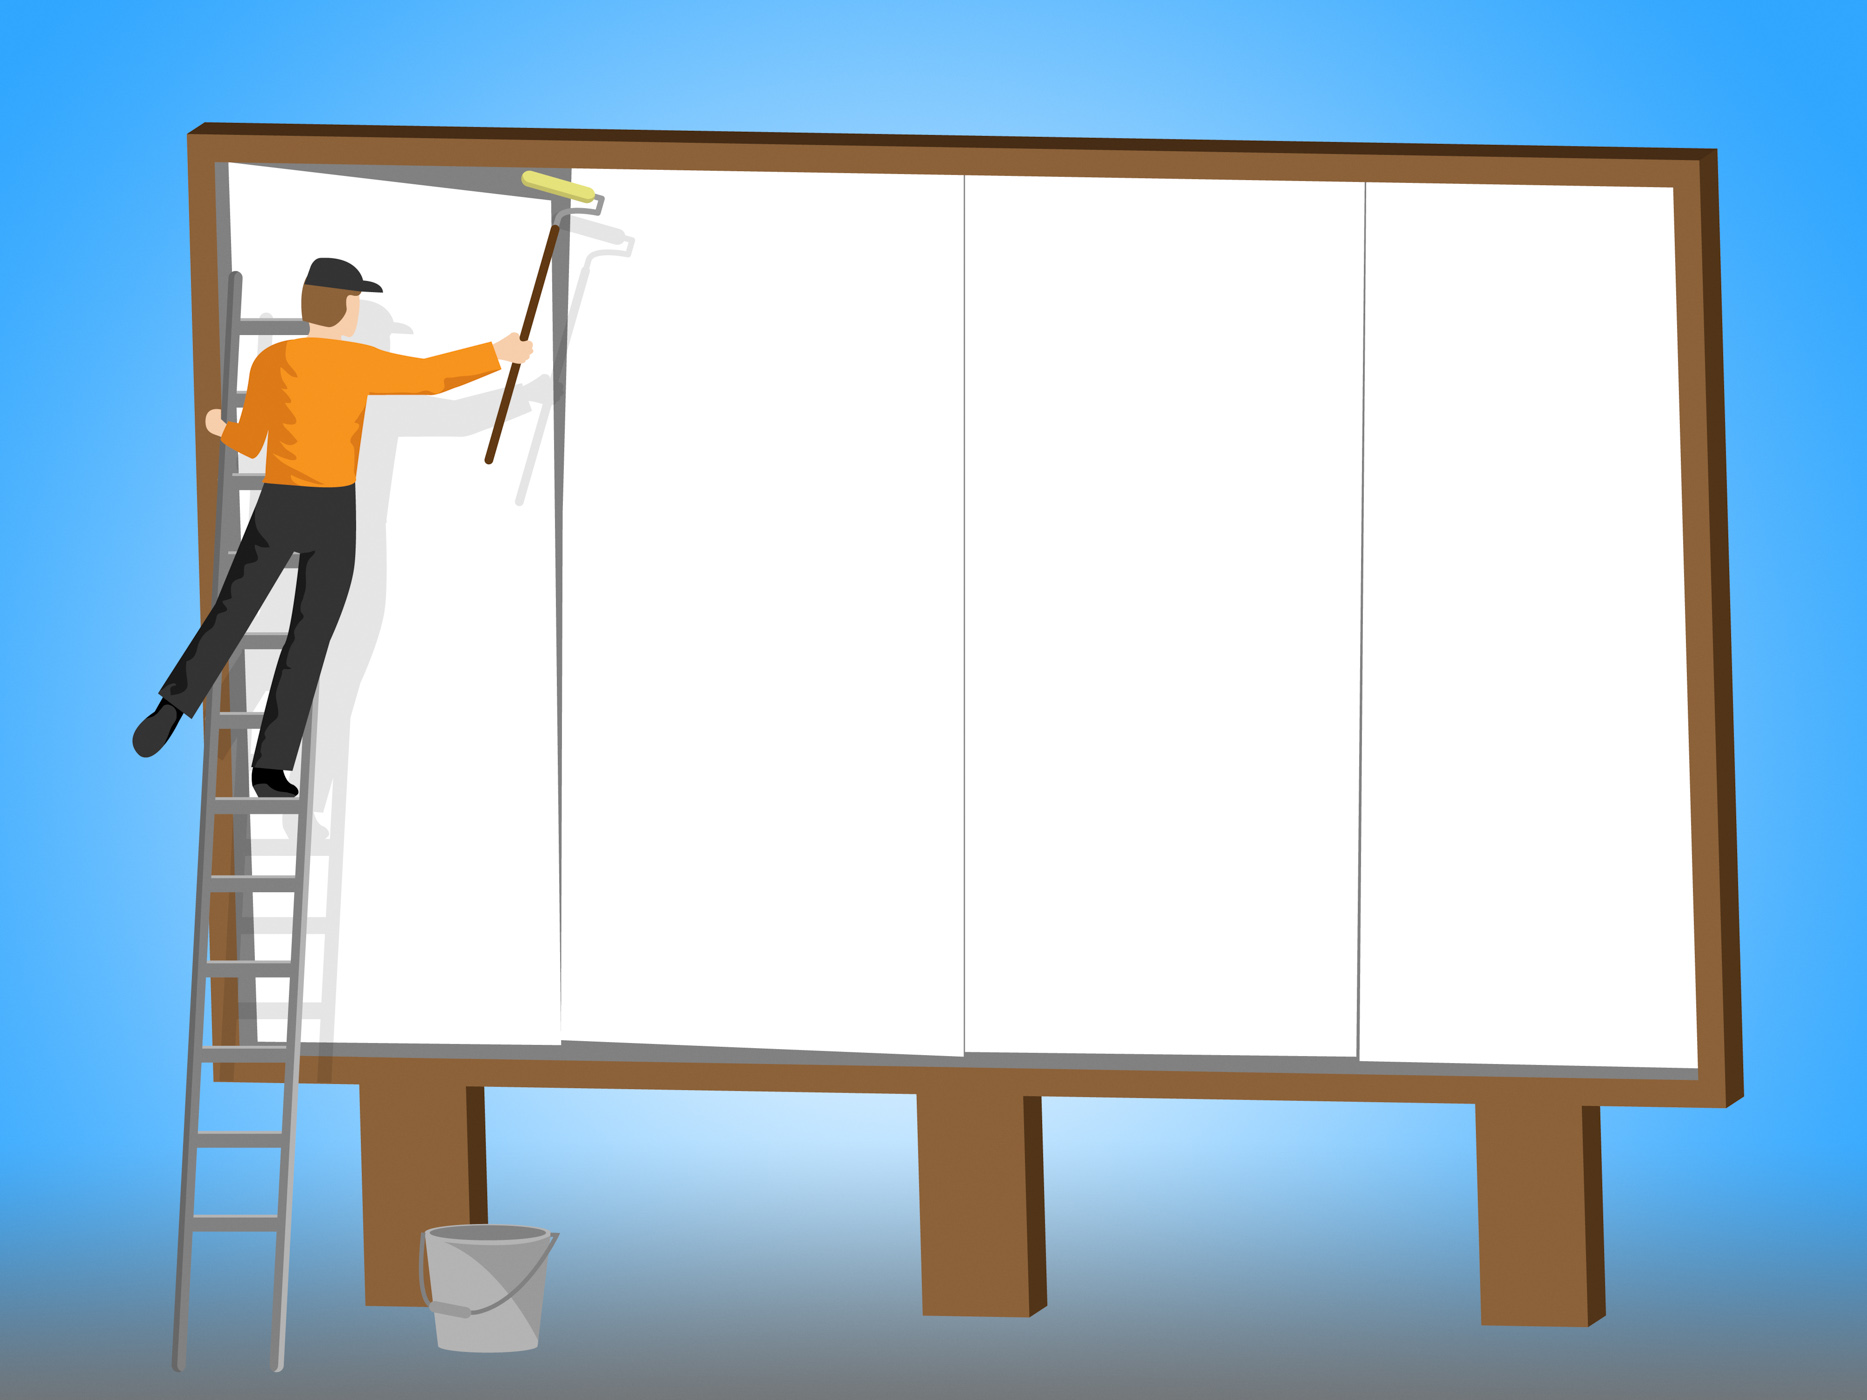 Copyspace billboard represents banner promotional and advertisement photo